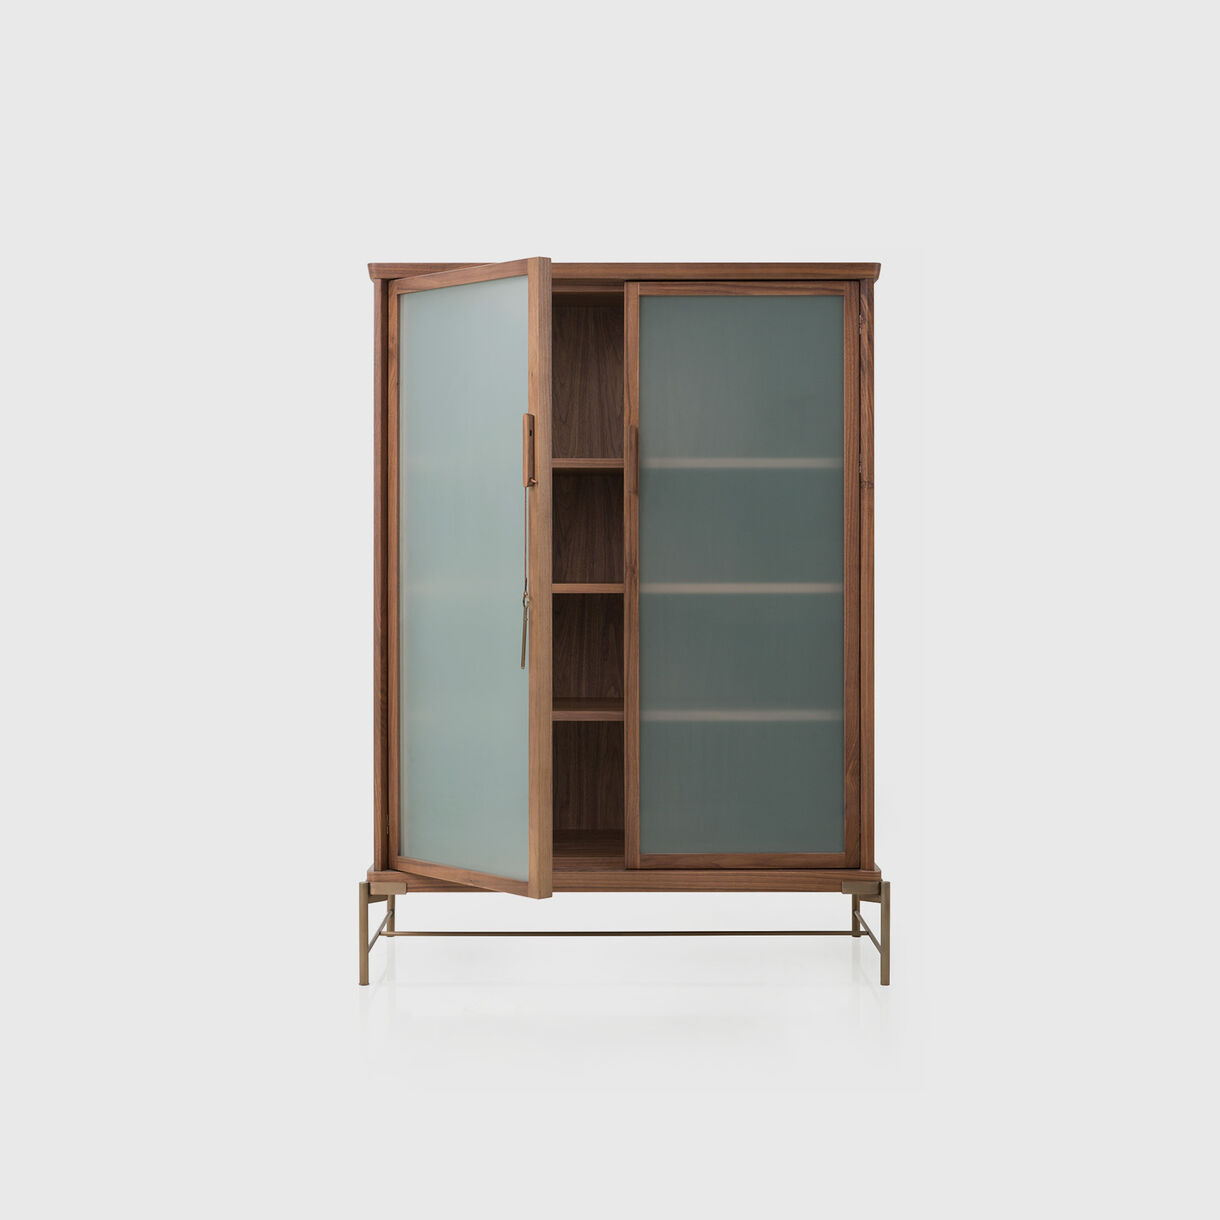 Dowry Cabinet III, Frosted Glass